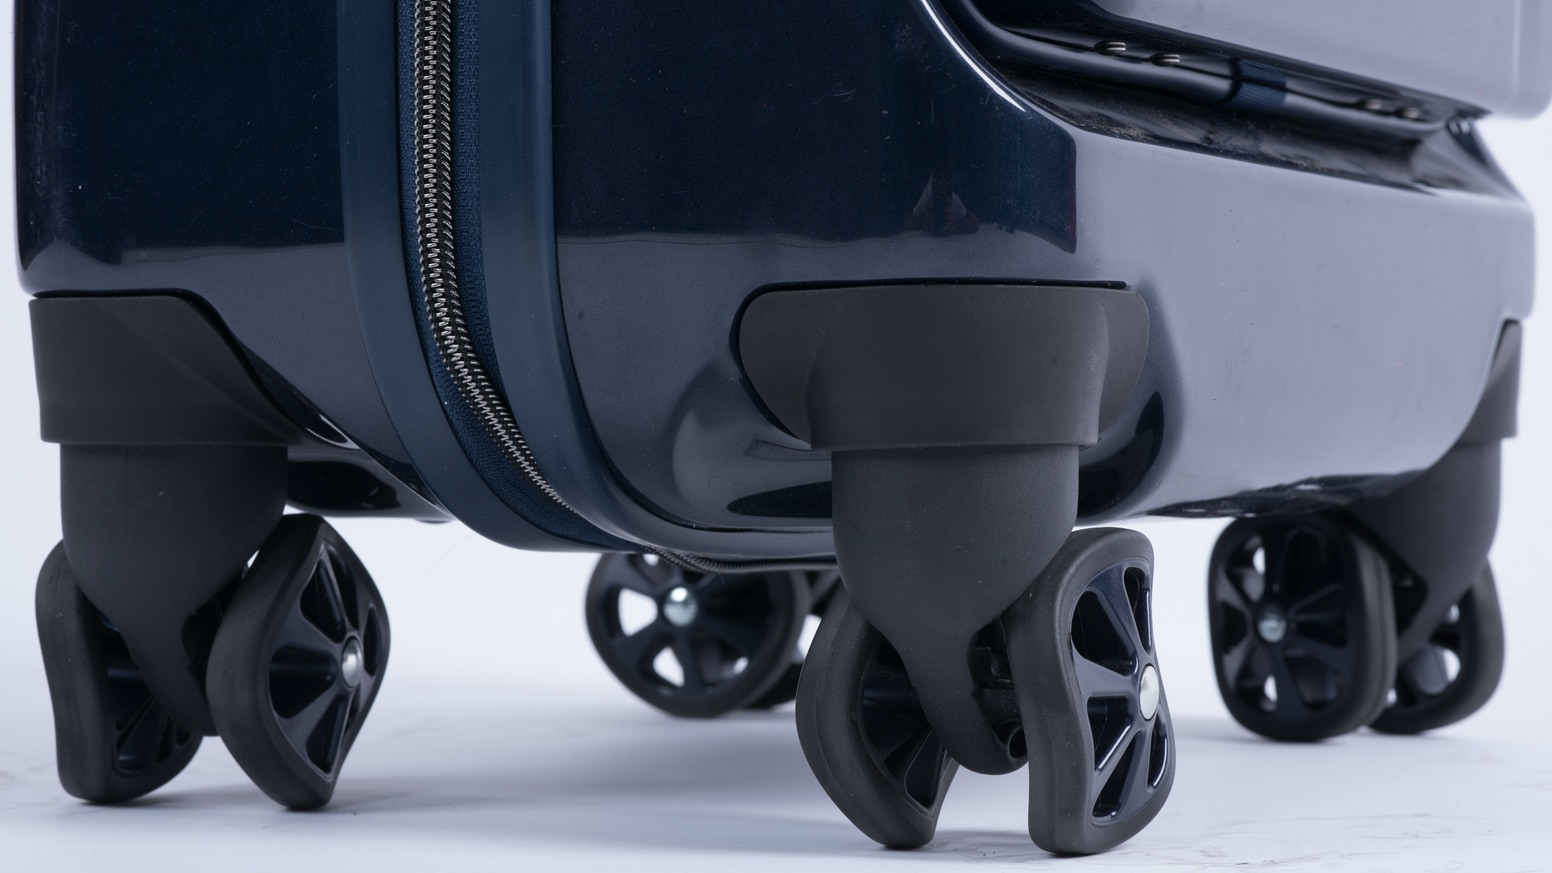 The most advanced airline approved luggage you'll ever own. Featuring - Shark Wheels - Wireless Charging - Magnetic Front Pocket